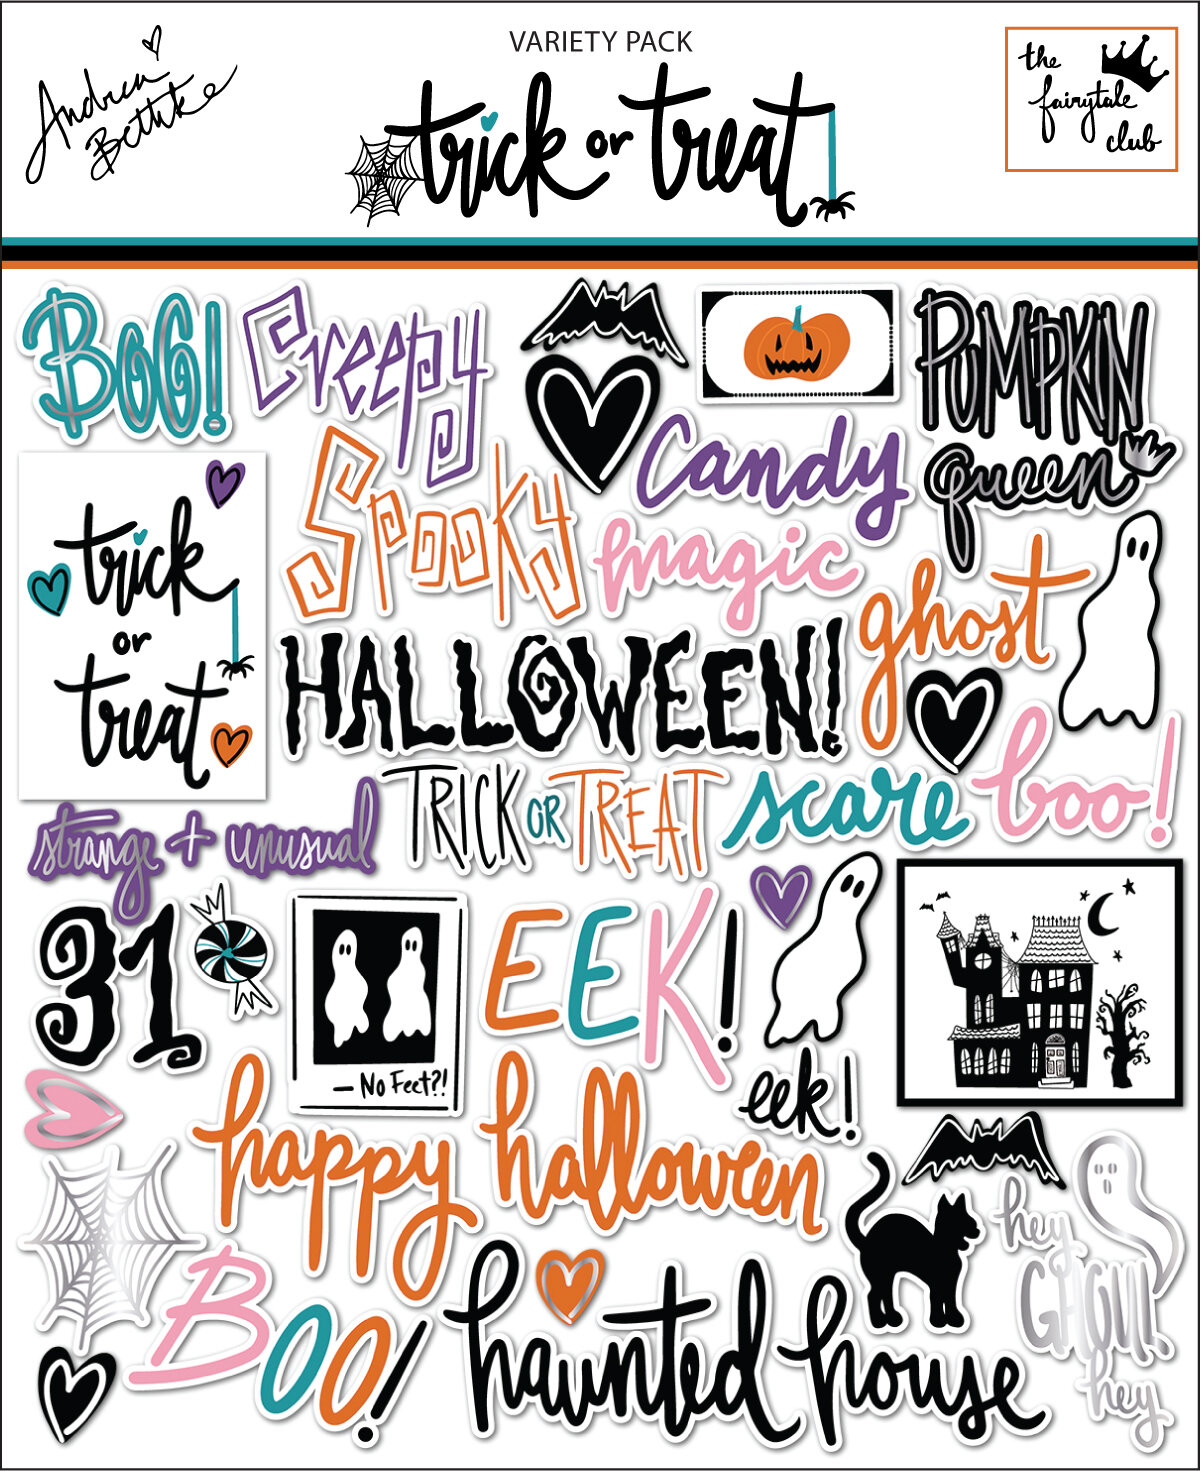 Trick or Treat - Variety Pack with top piece-06.jpg